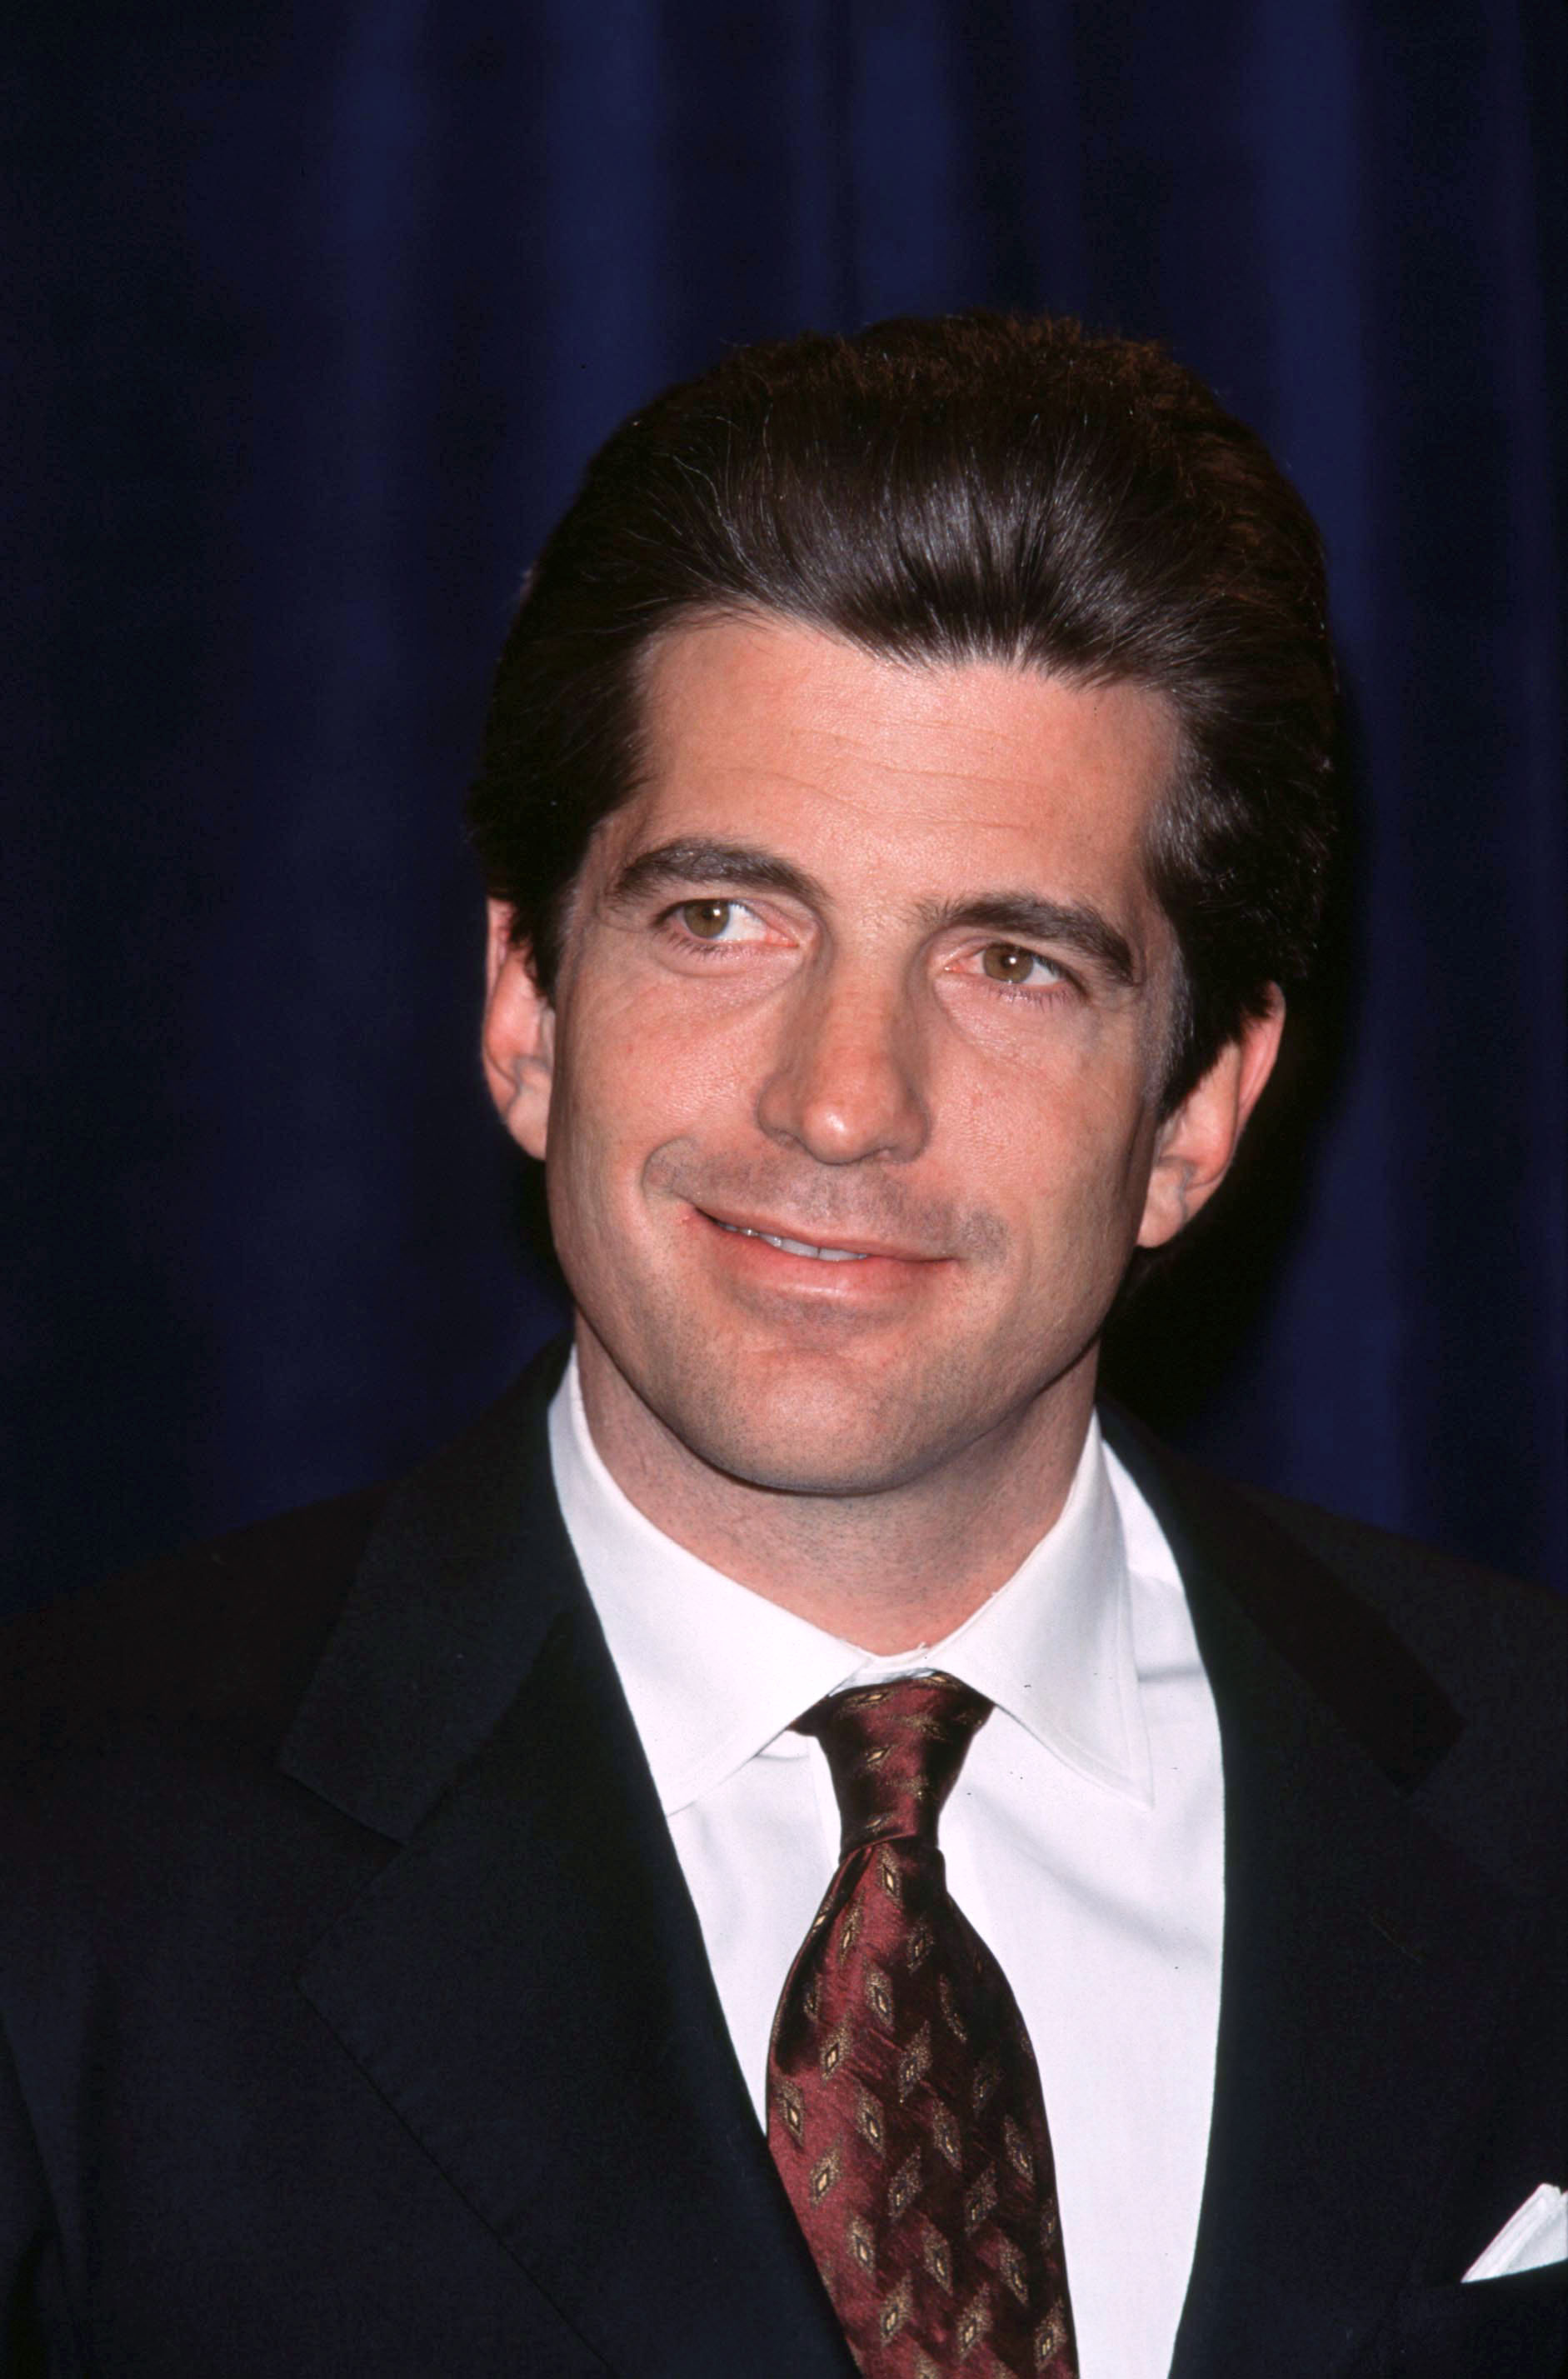 John Kennedy Jr. at Waldorf-Astoria Hotel in New York in March 1999 | Source: Getty Images